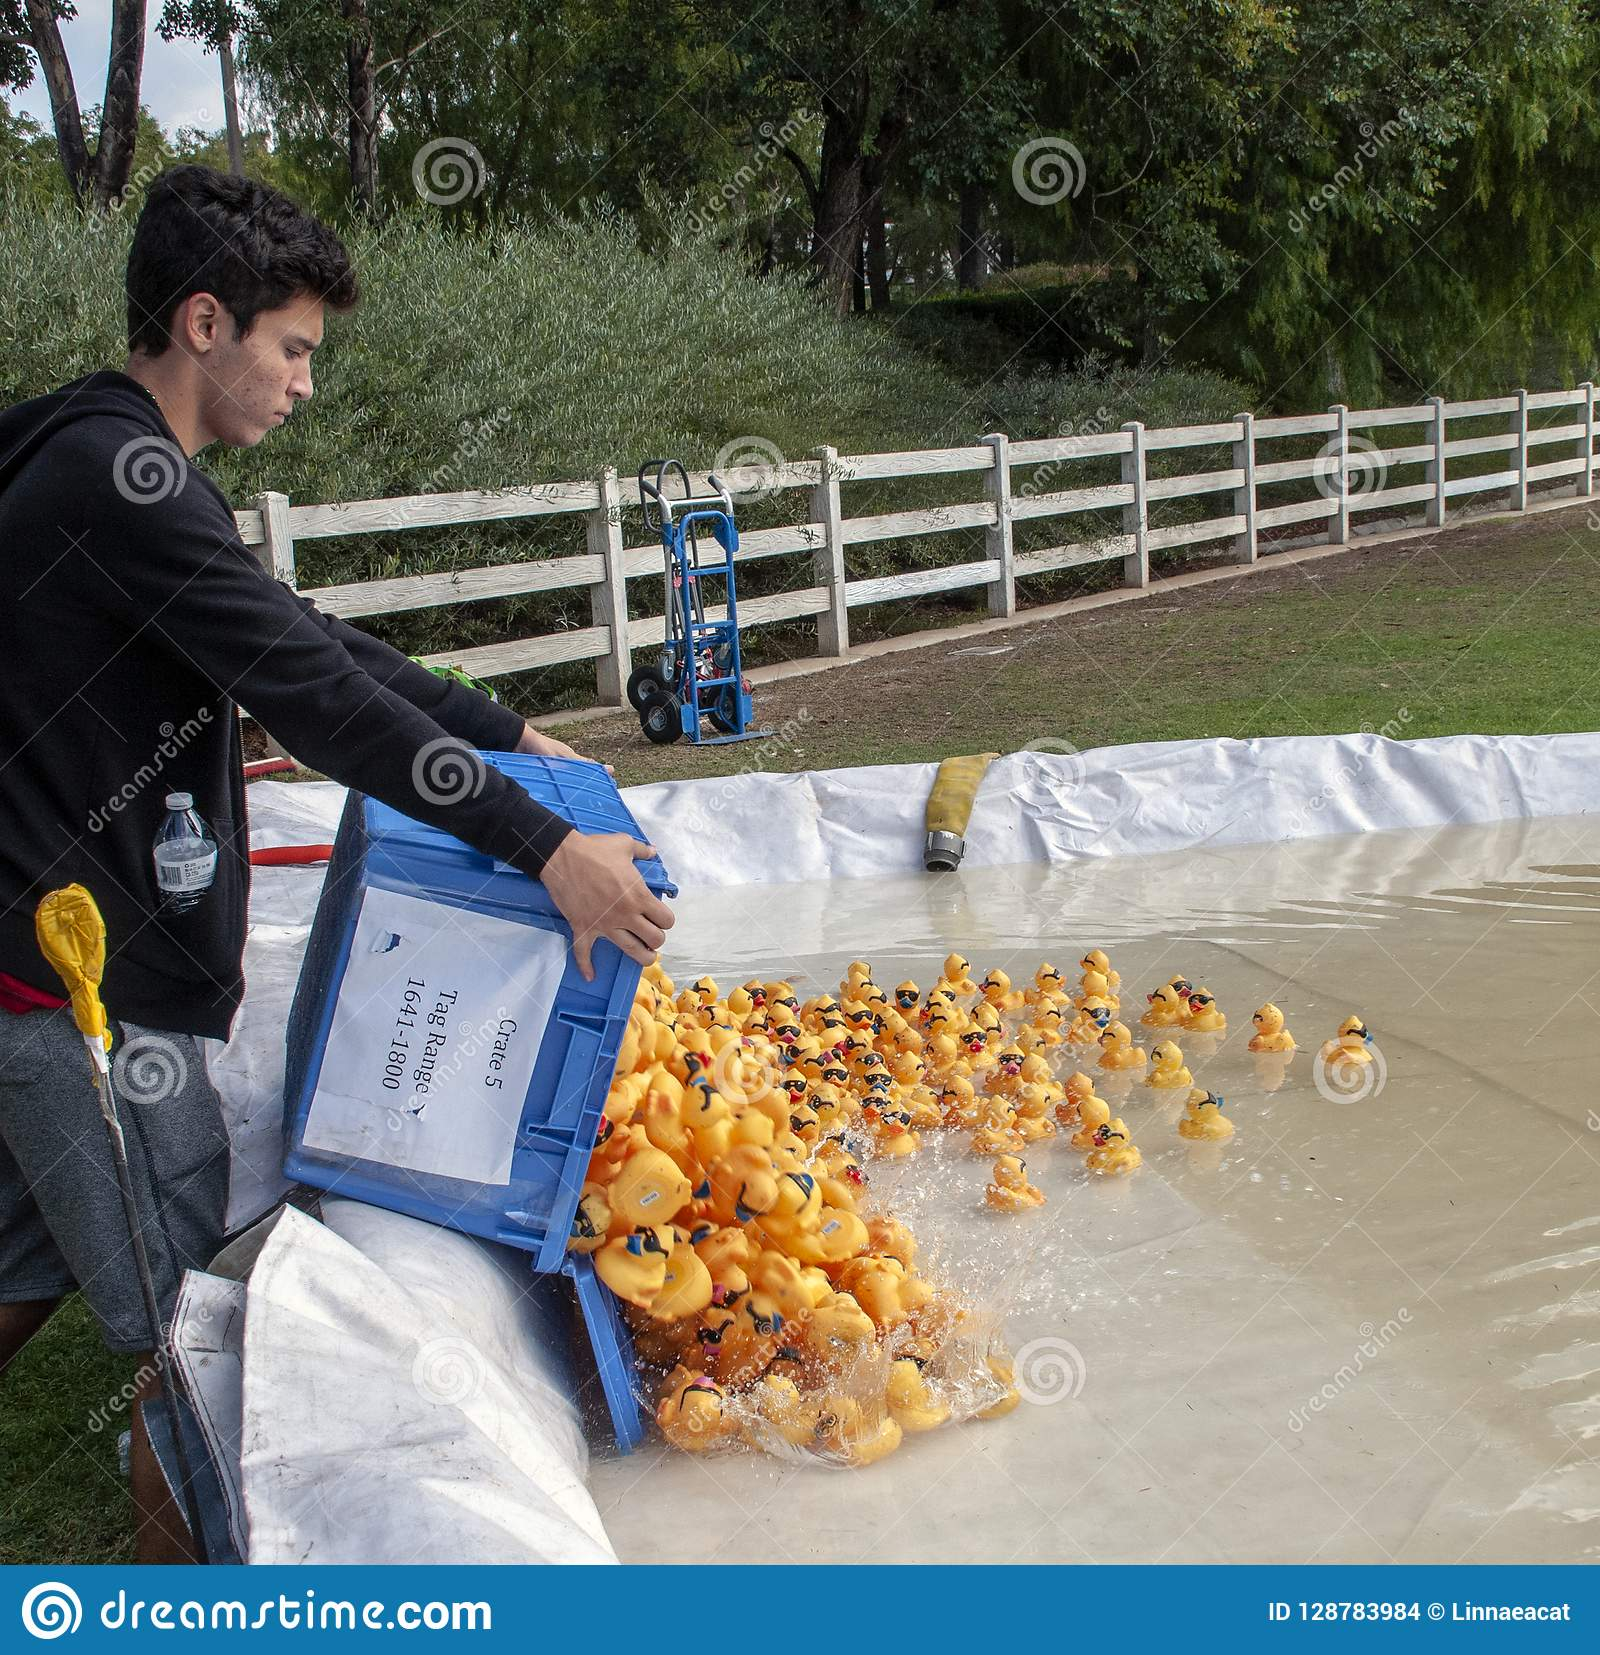 Teen Volunteer Dumps a crate of rubber duckies into the man-made pond during the Rubber Duck Festival